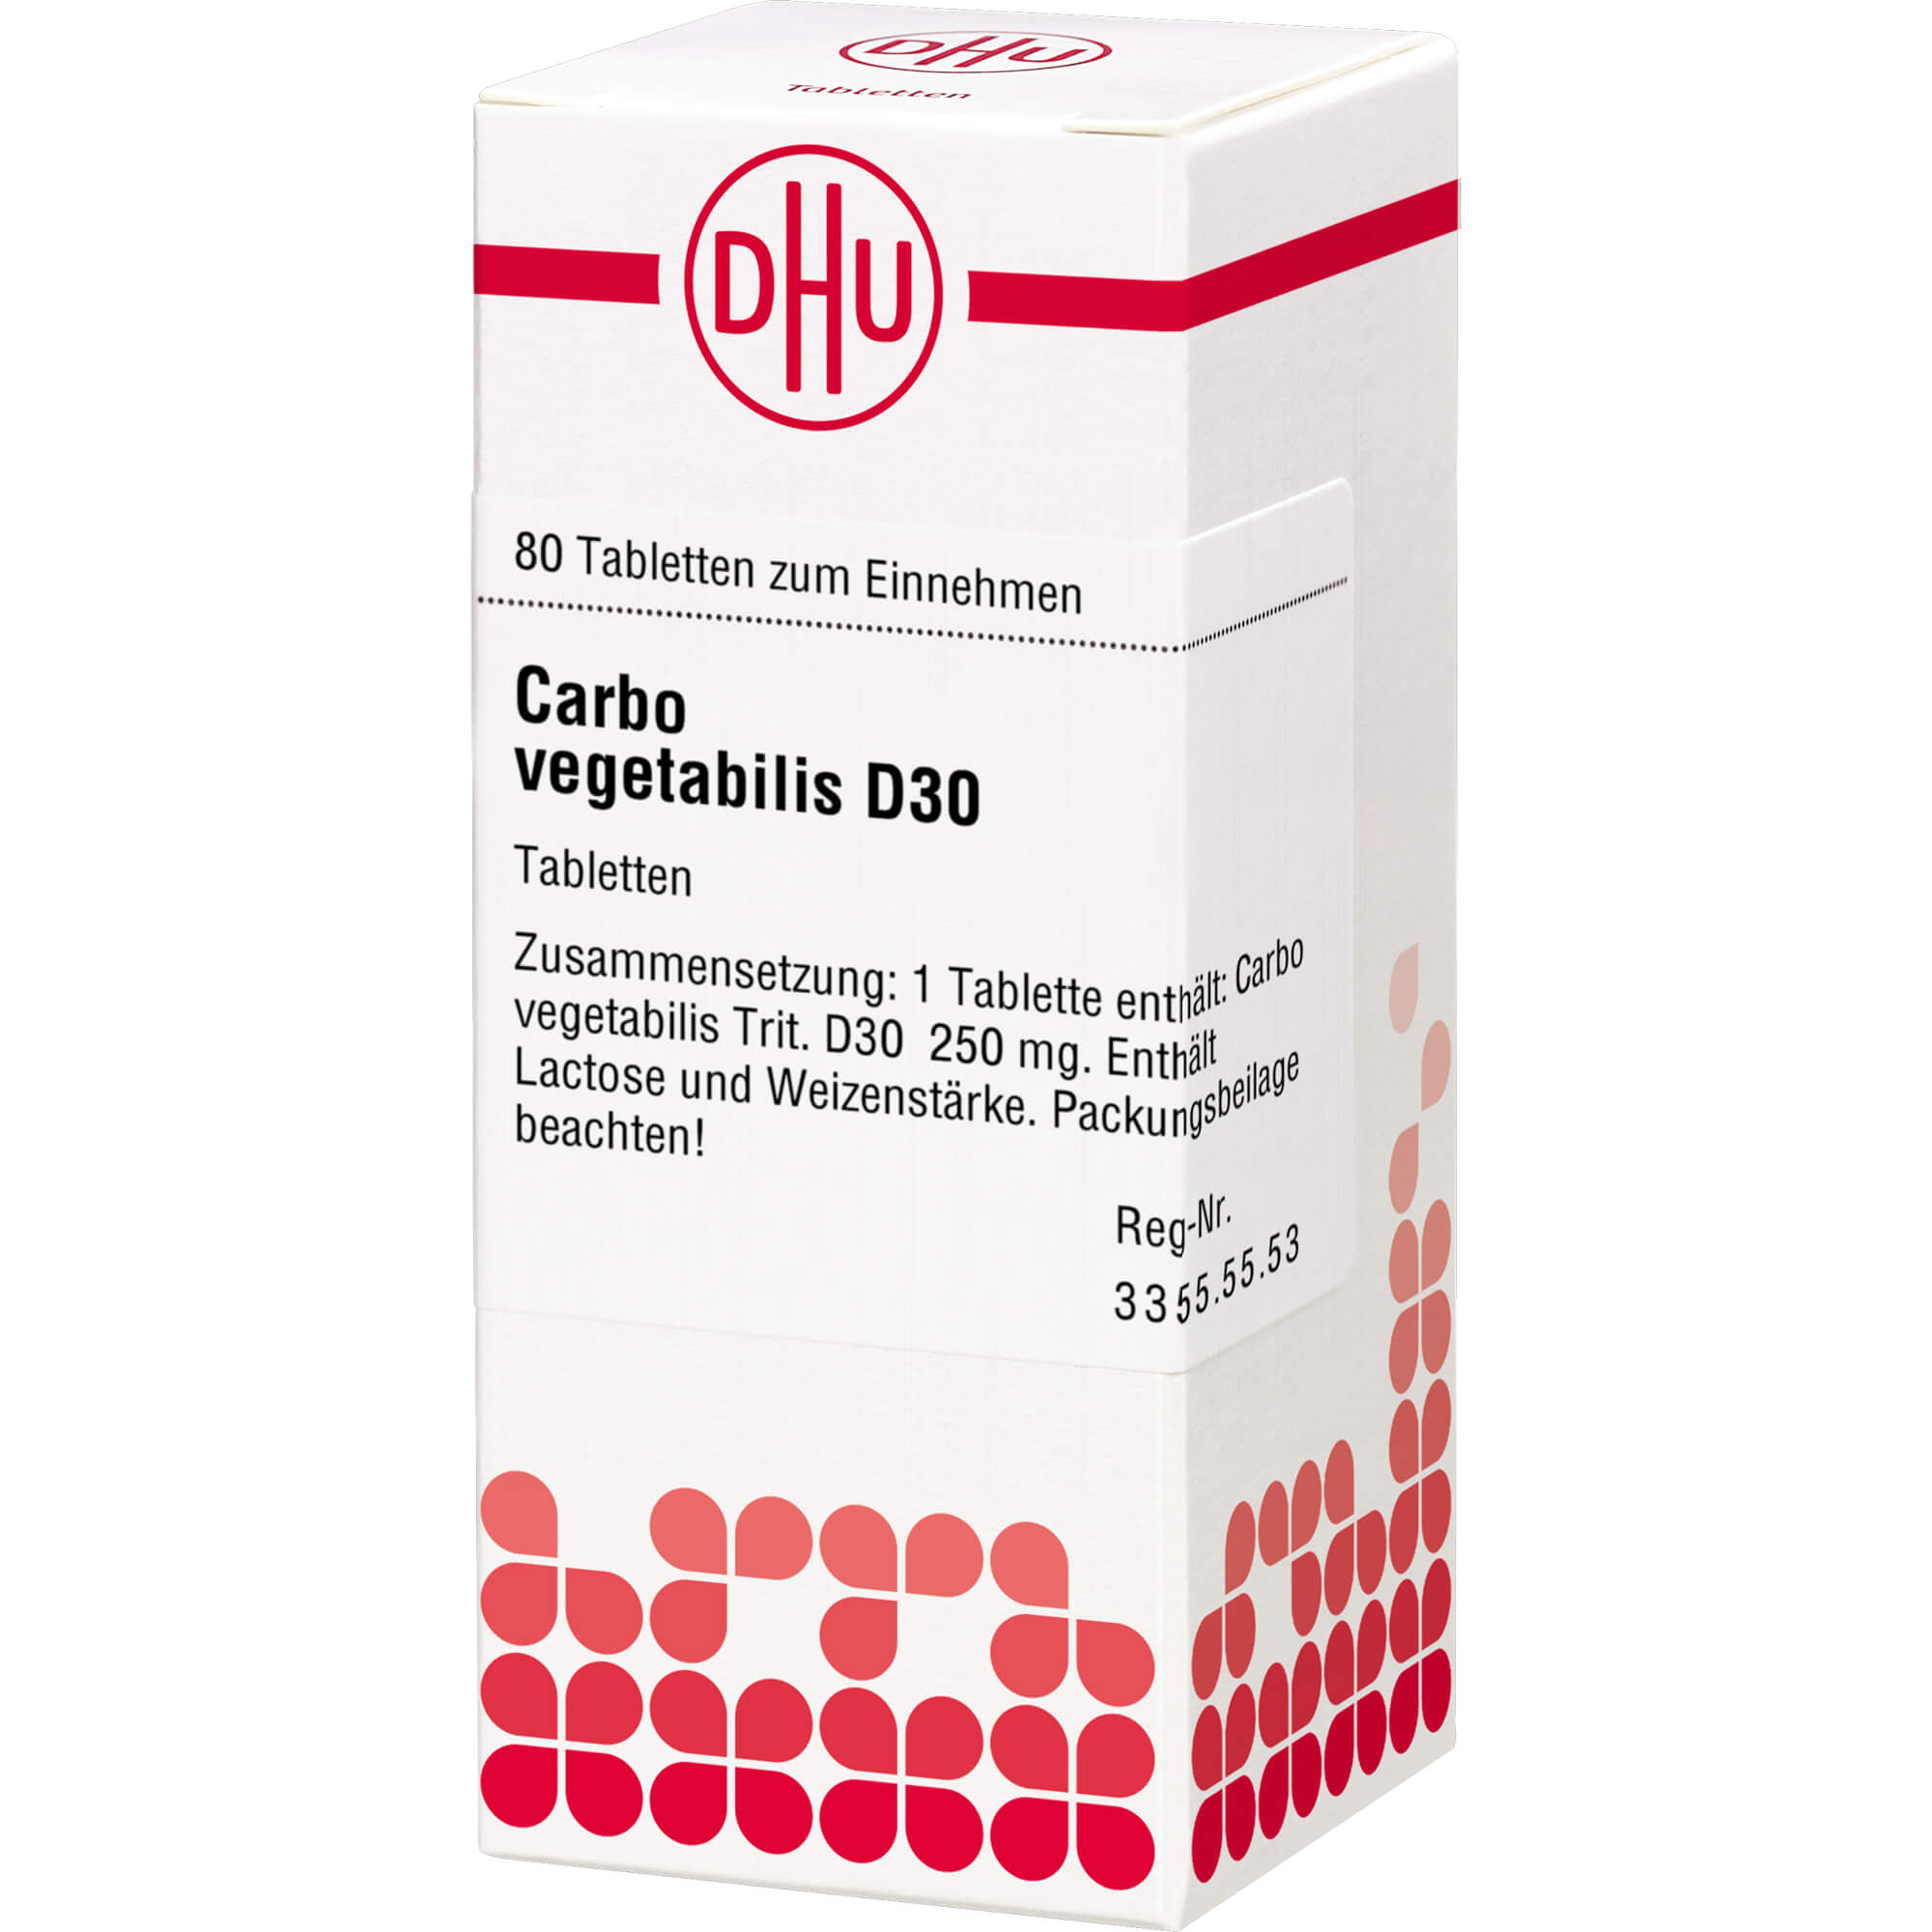 CARBO VEGETABILIS D 30 Tabletten